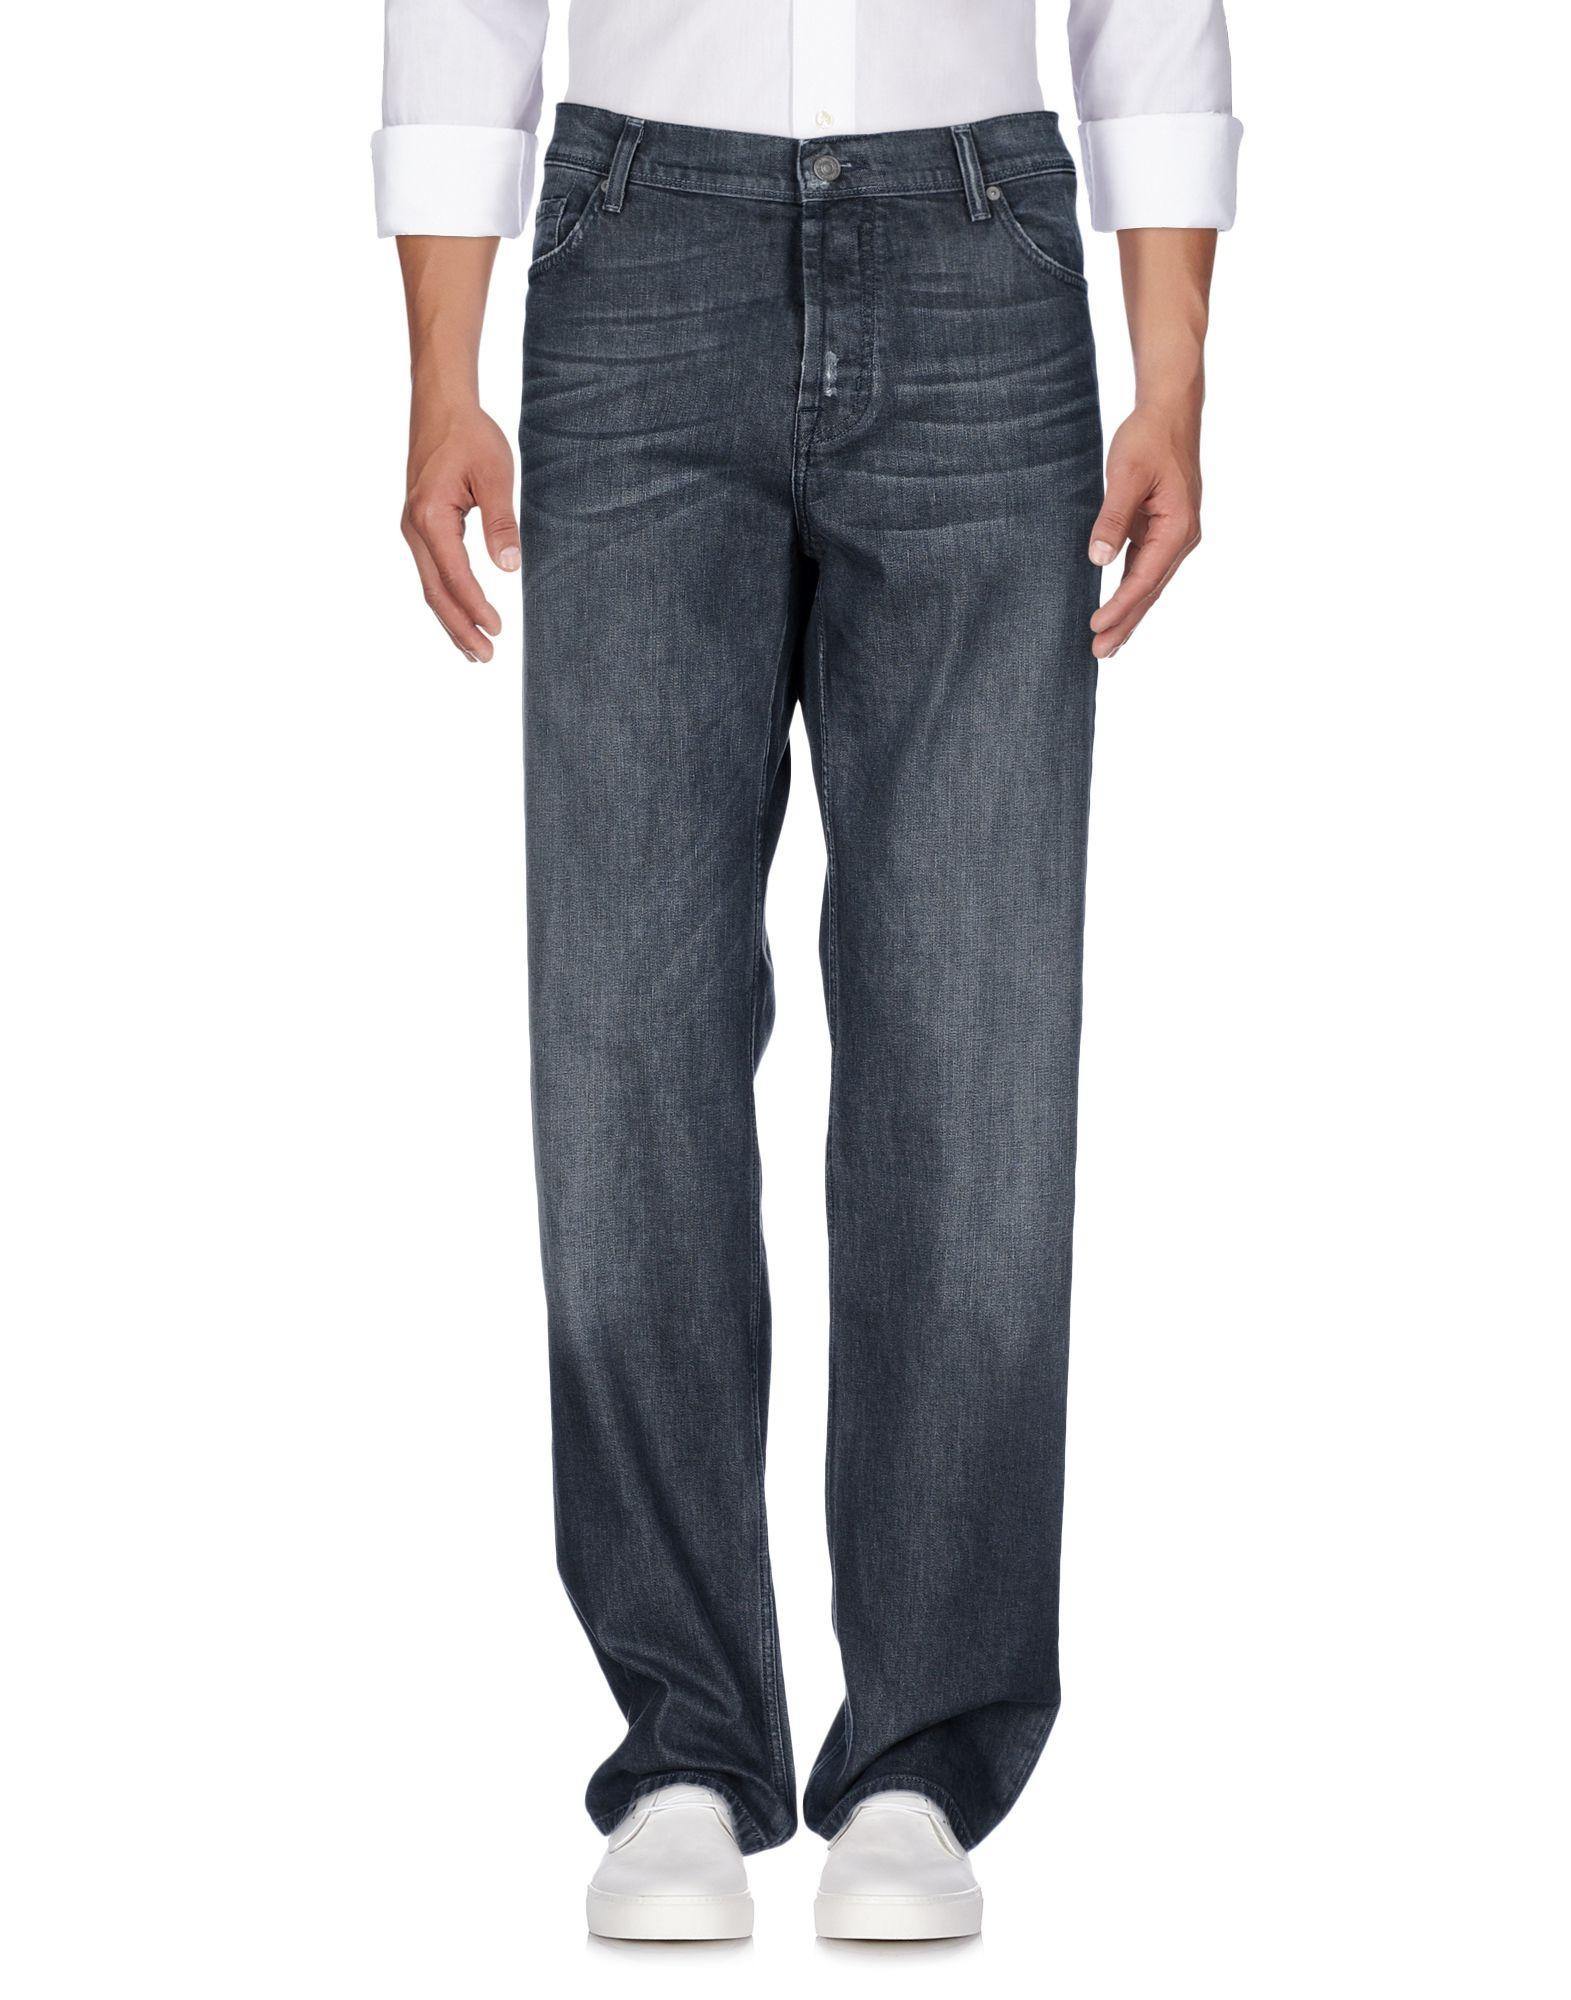 7 For All Mankind Denim Pants In Grey